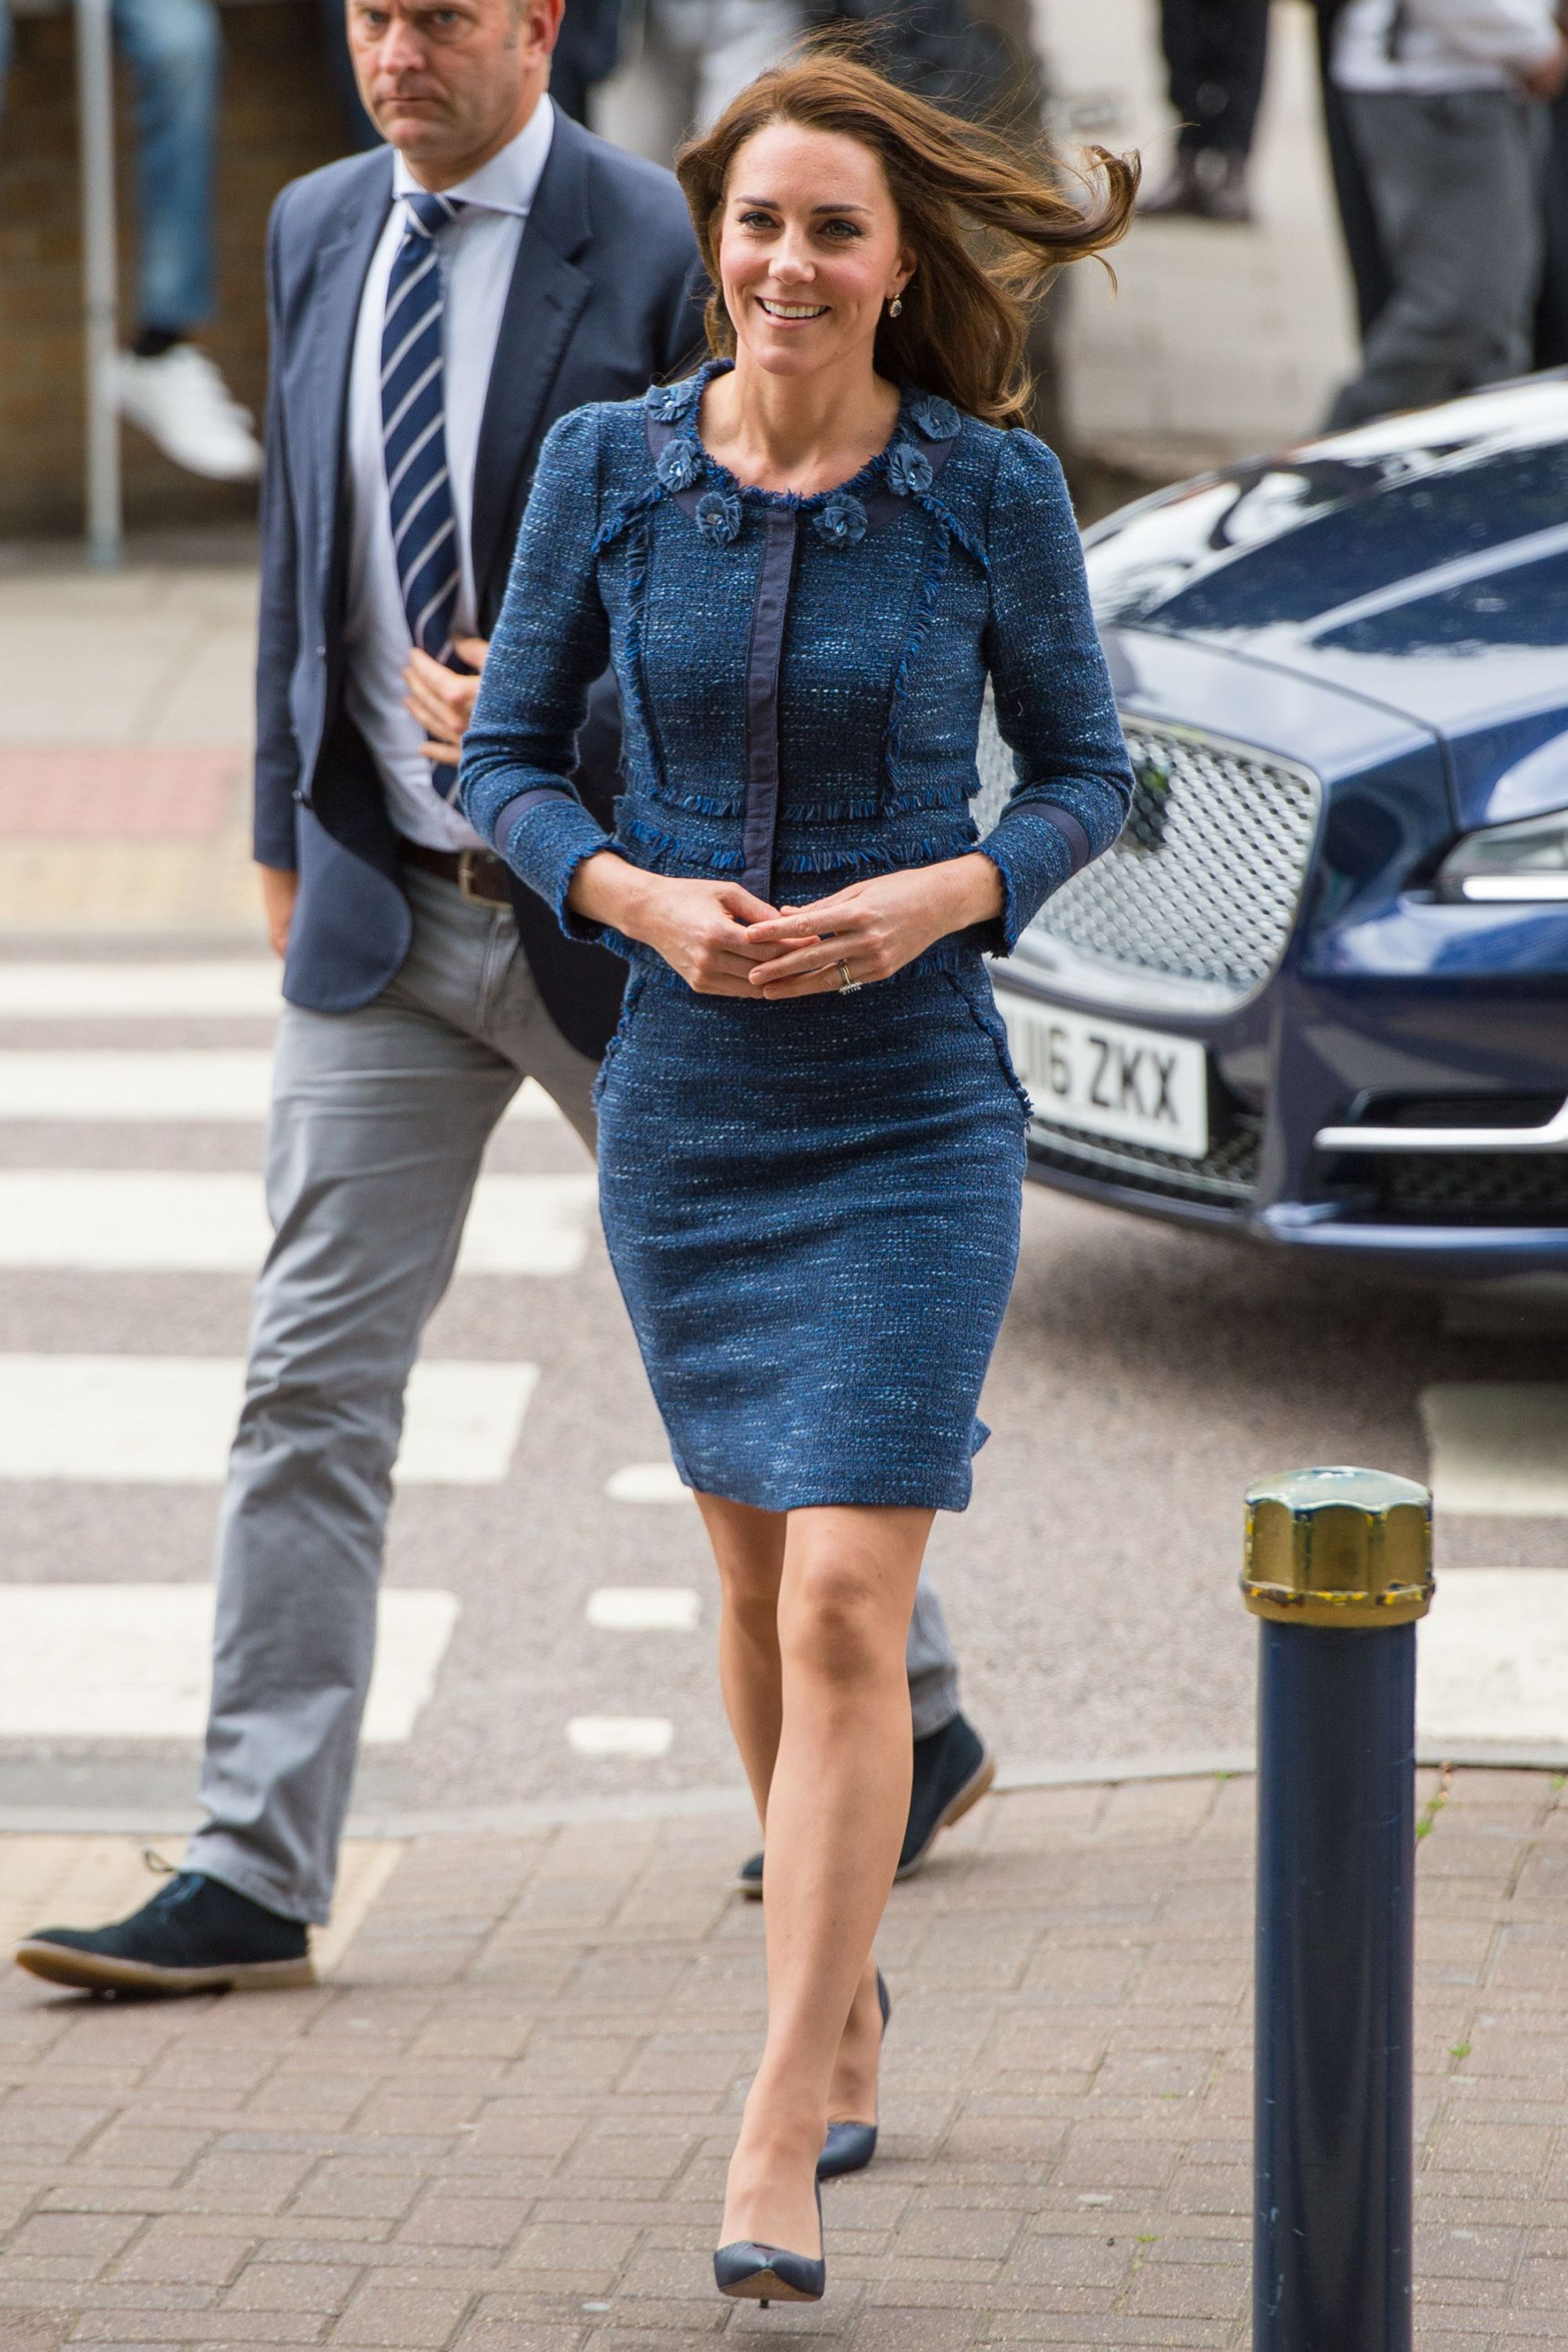 Kate Middleton s Best Style Moments   The Duchess of Cambridge s     Kate Middleton s Best Style Moments   The Duchess of Cambridge s Most  Fashionable Outfits